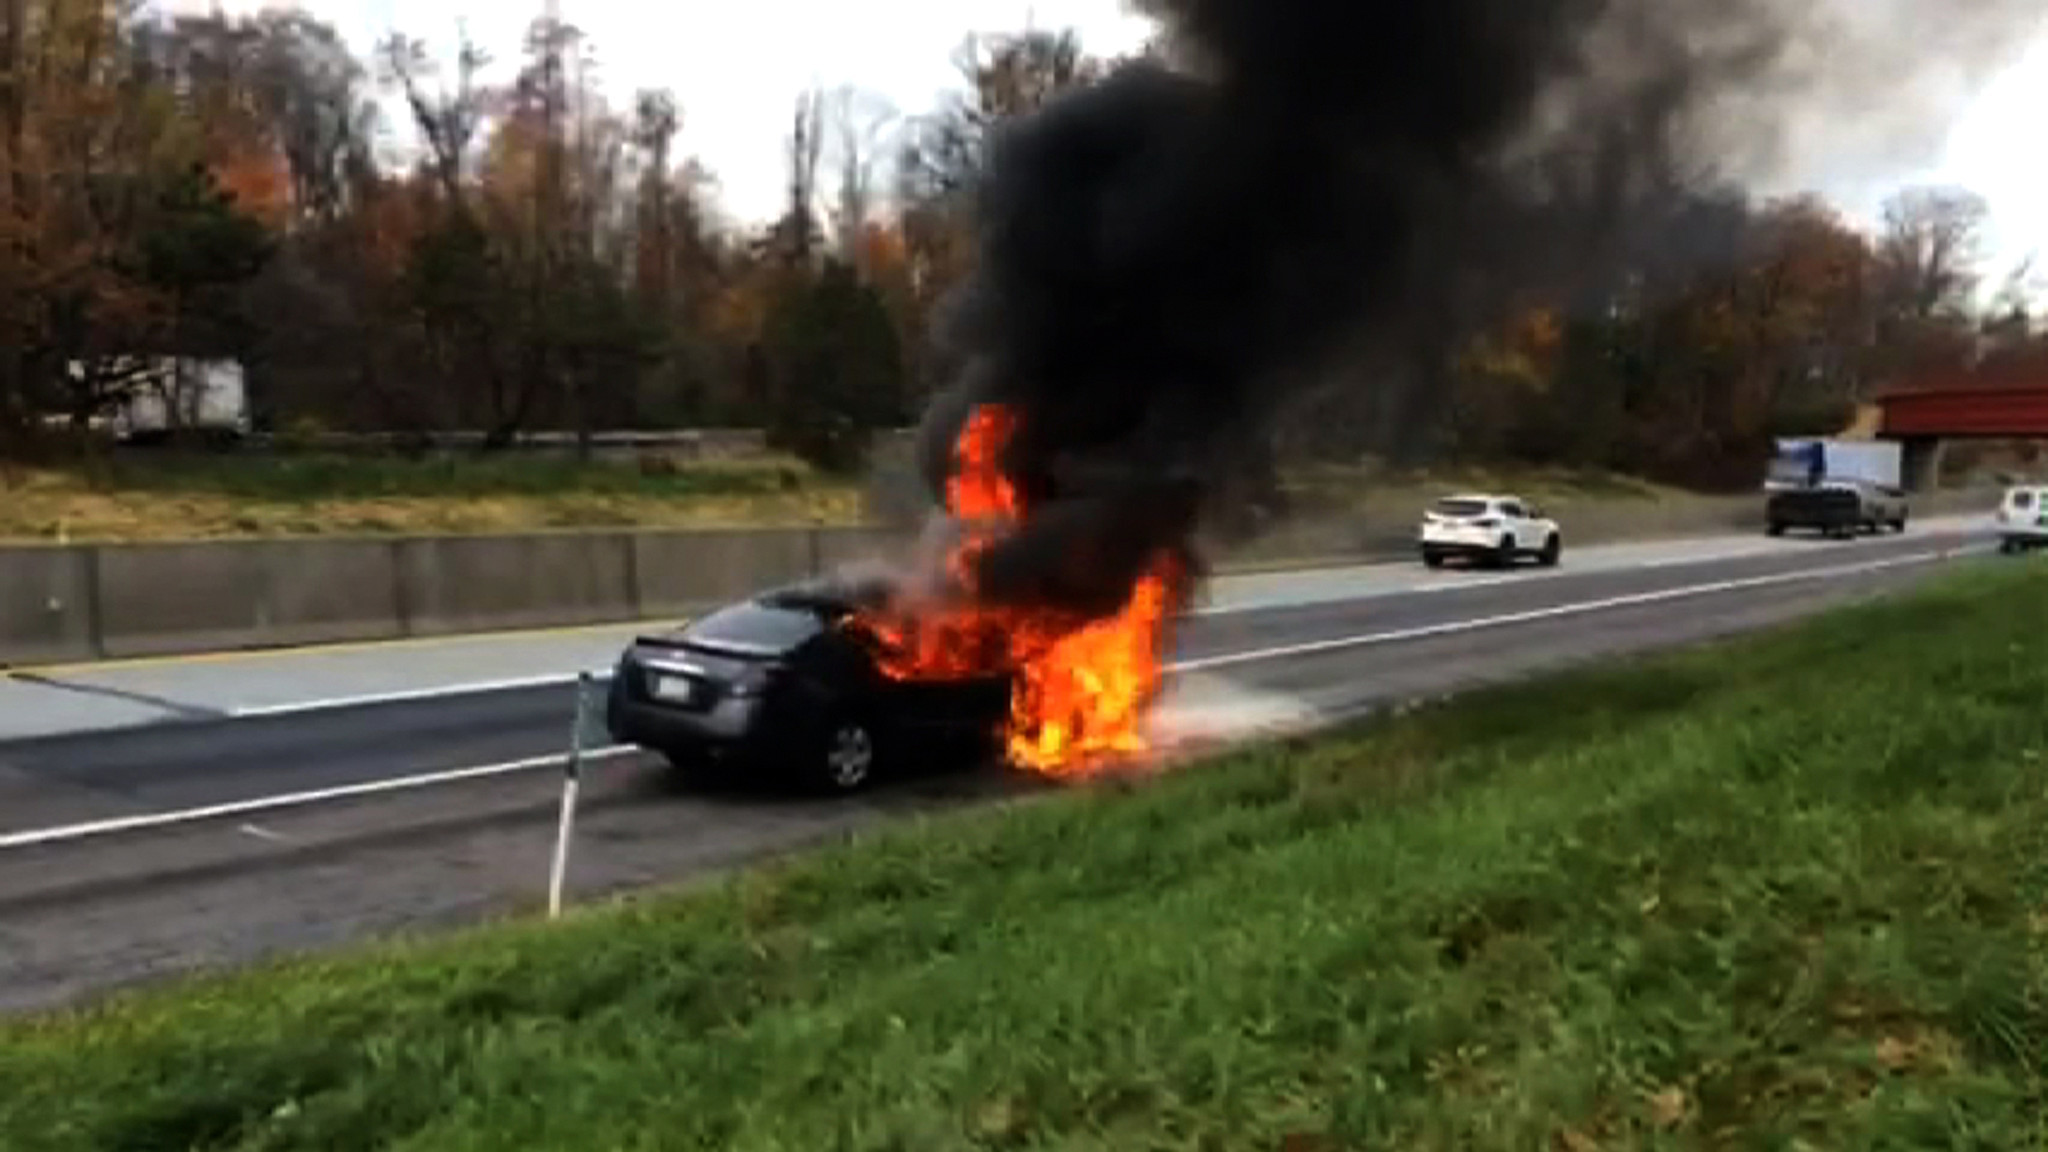 VIDEO: Car Fire on PA Turnpike - The Morning Call